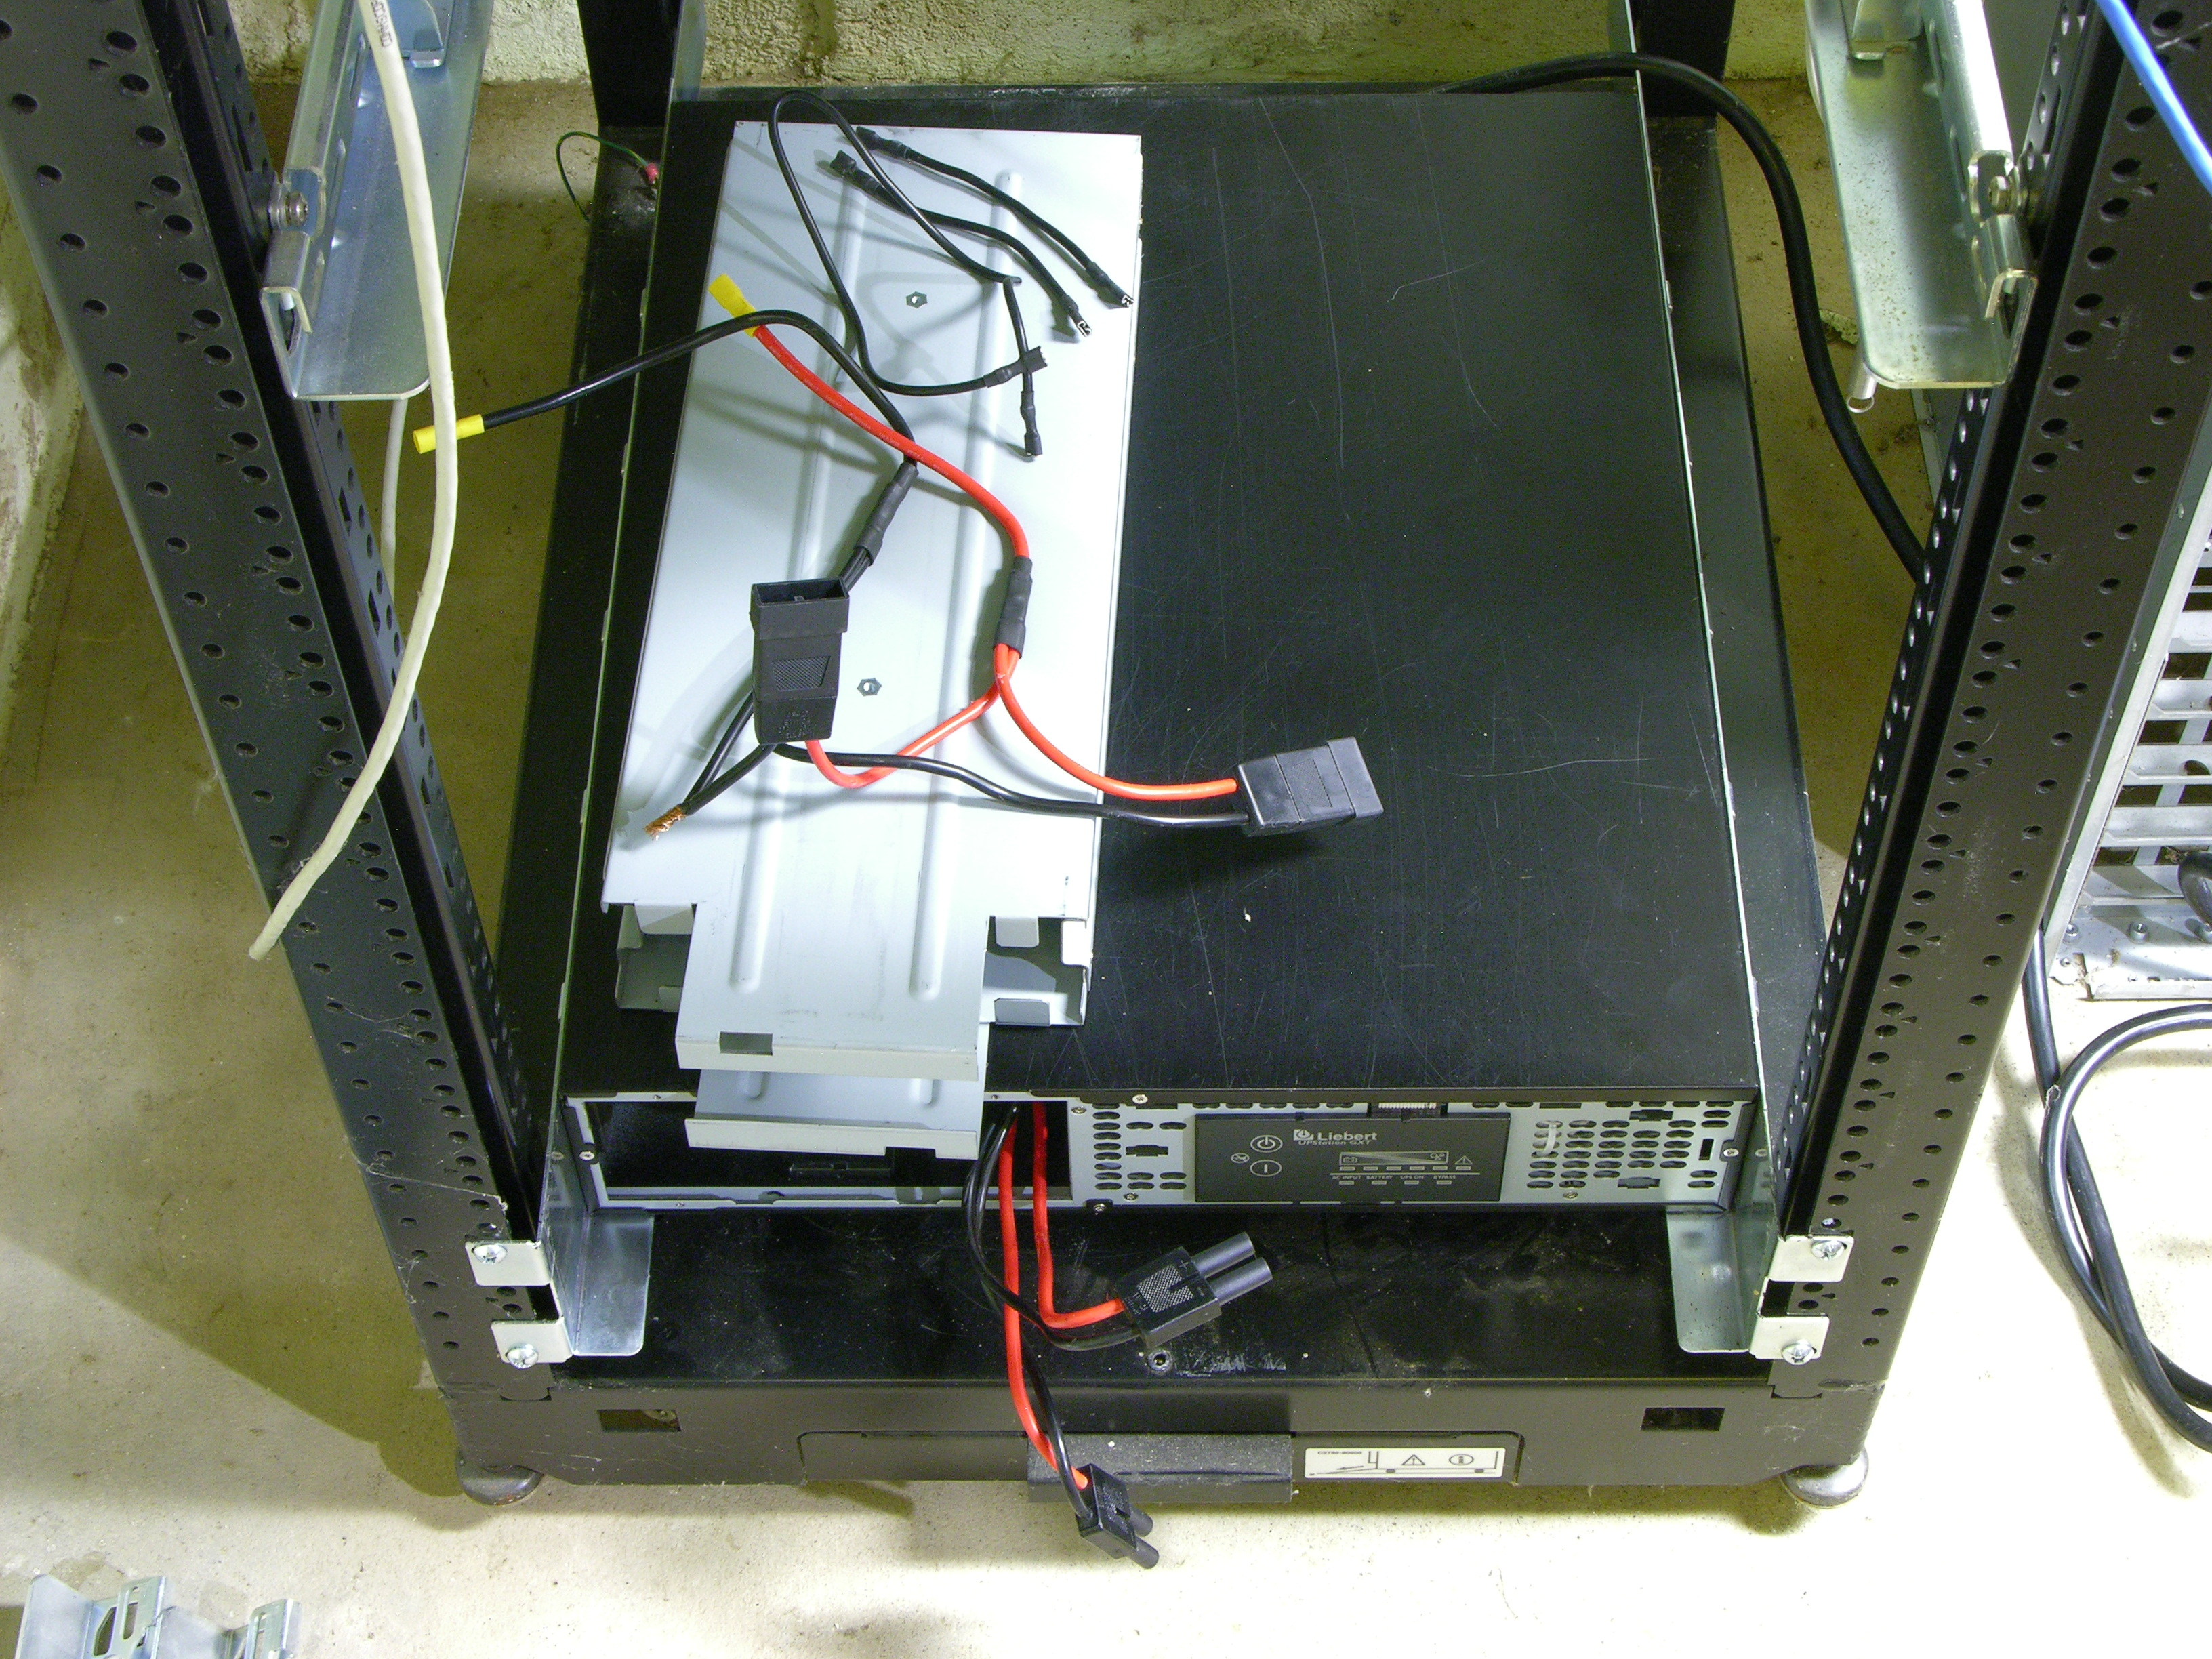 liebert gxt2-2000rt120 ups with battery cage disassembled